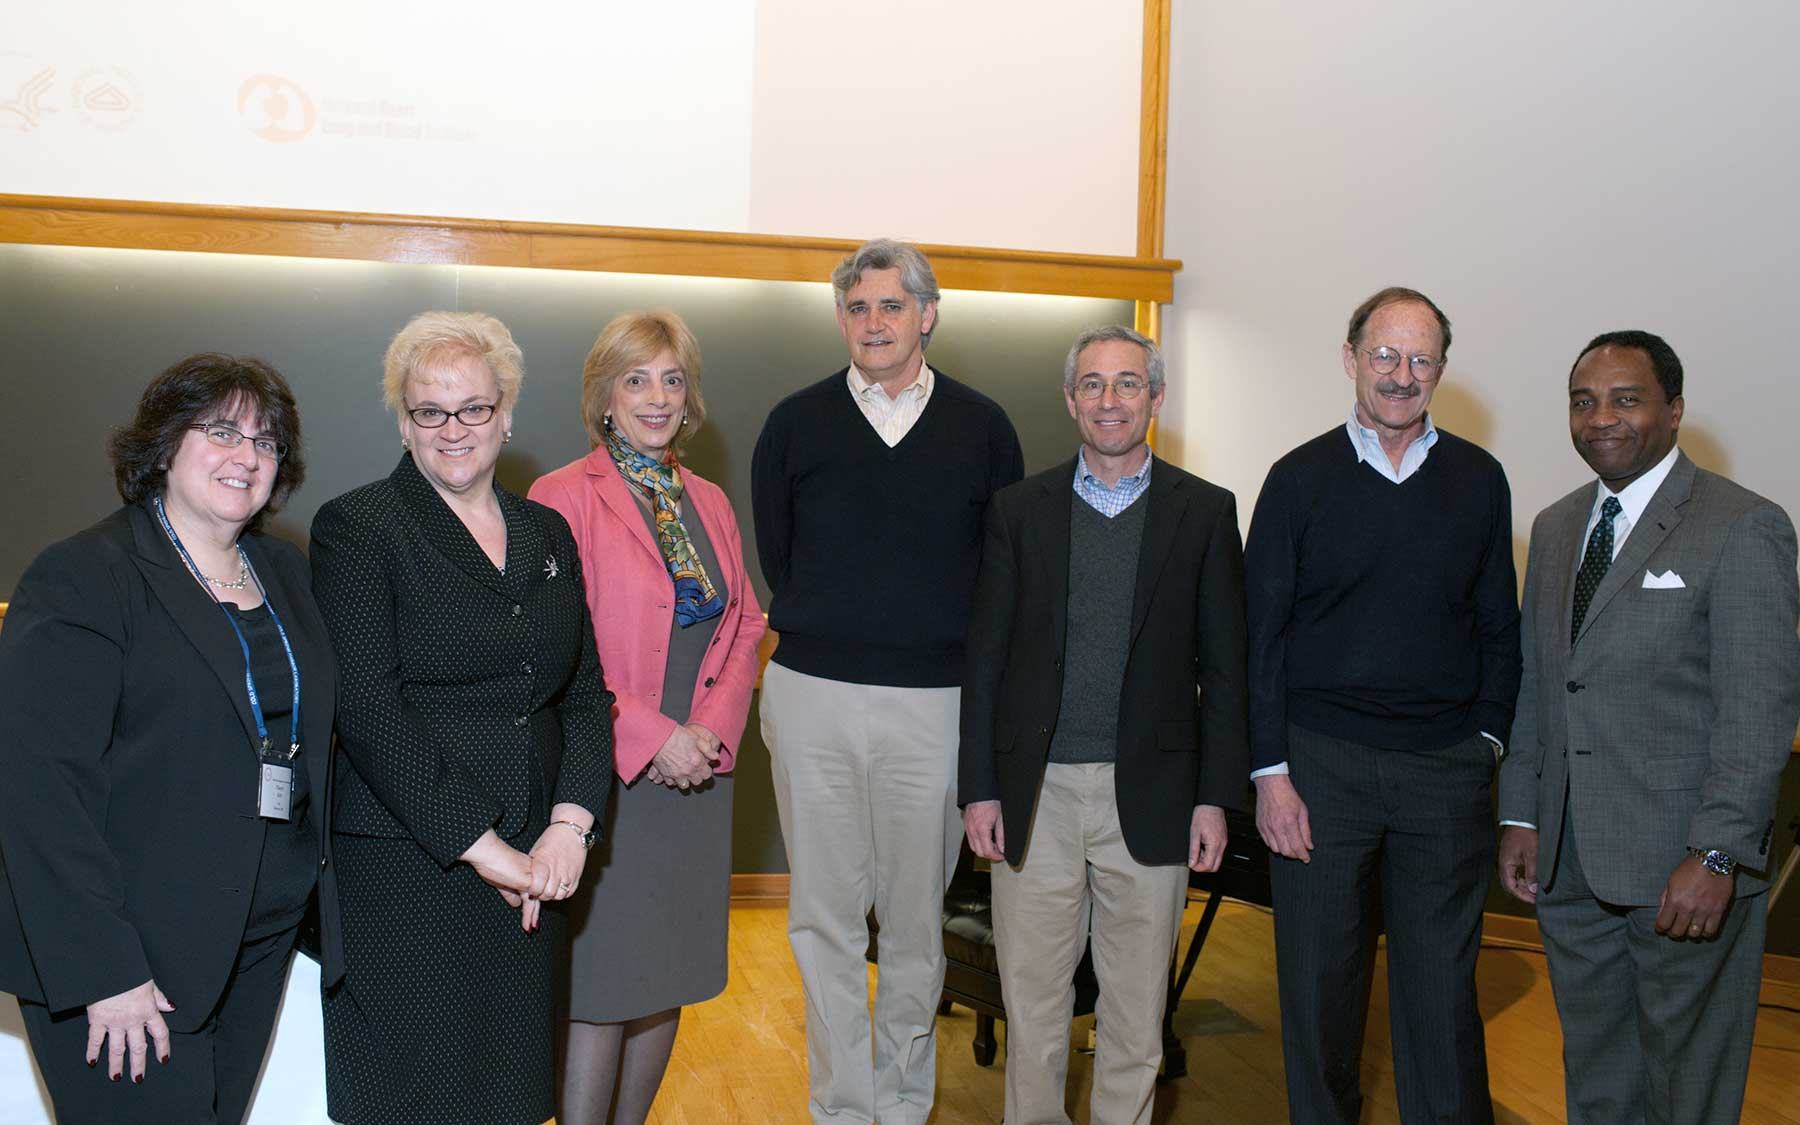 Stillman with NIH leaders